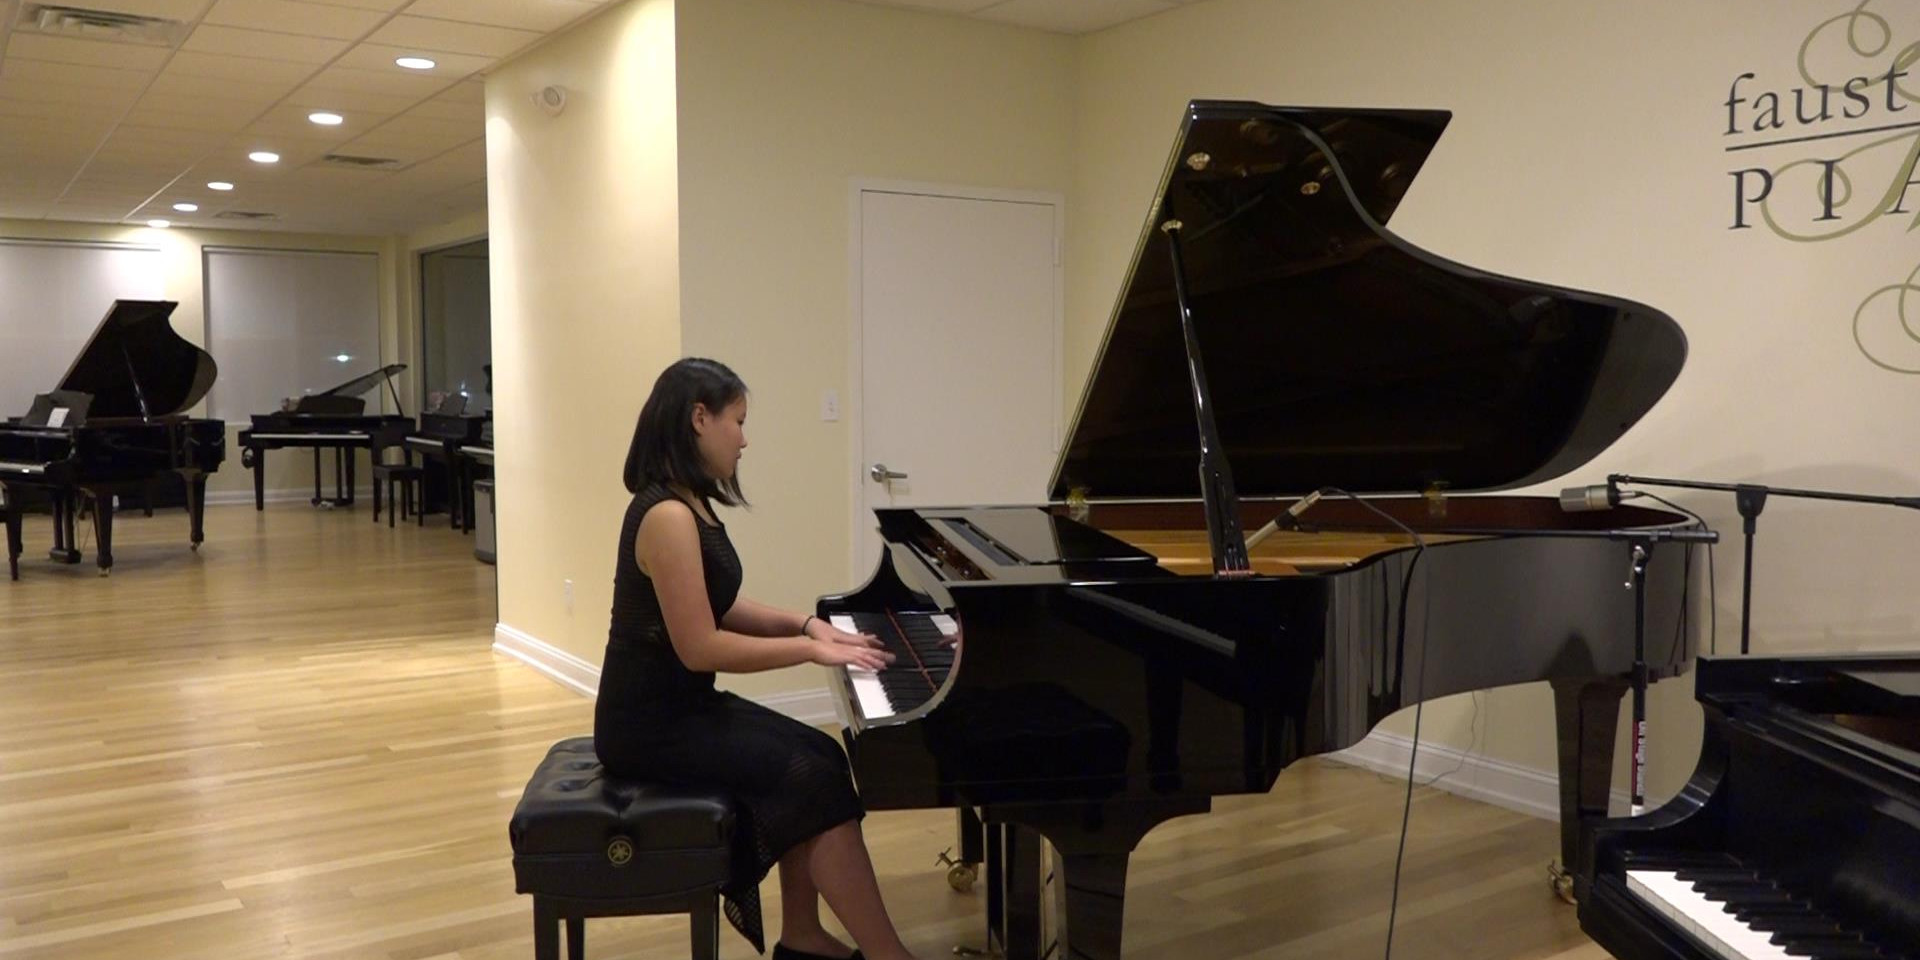 Jessica plays Chopin at Faust Harrison Pianos